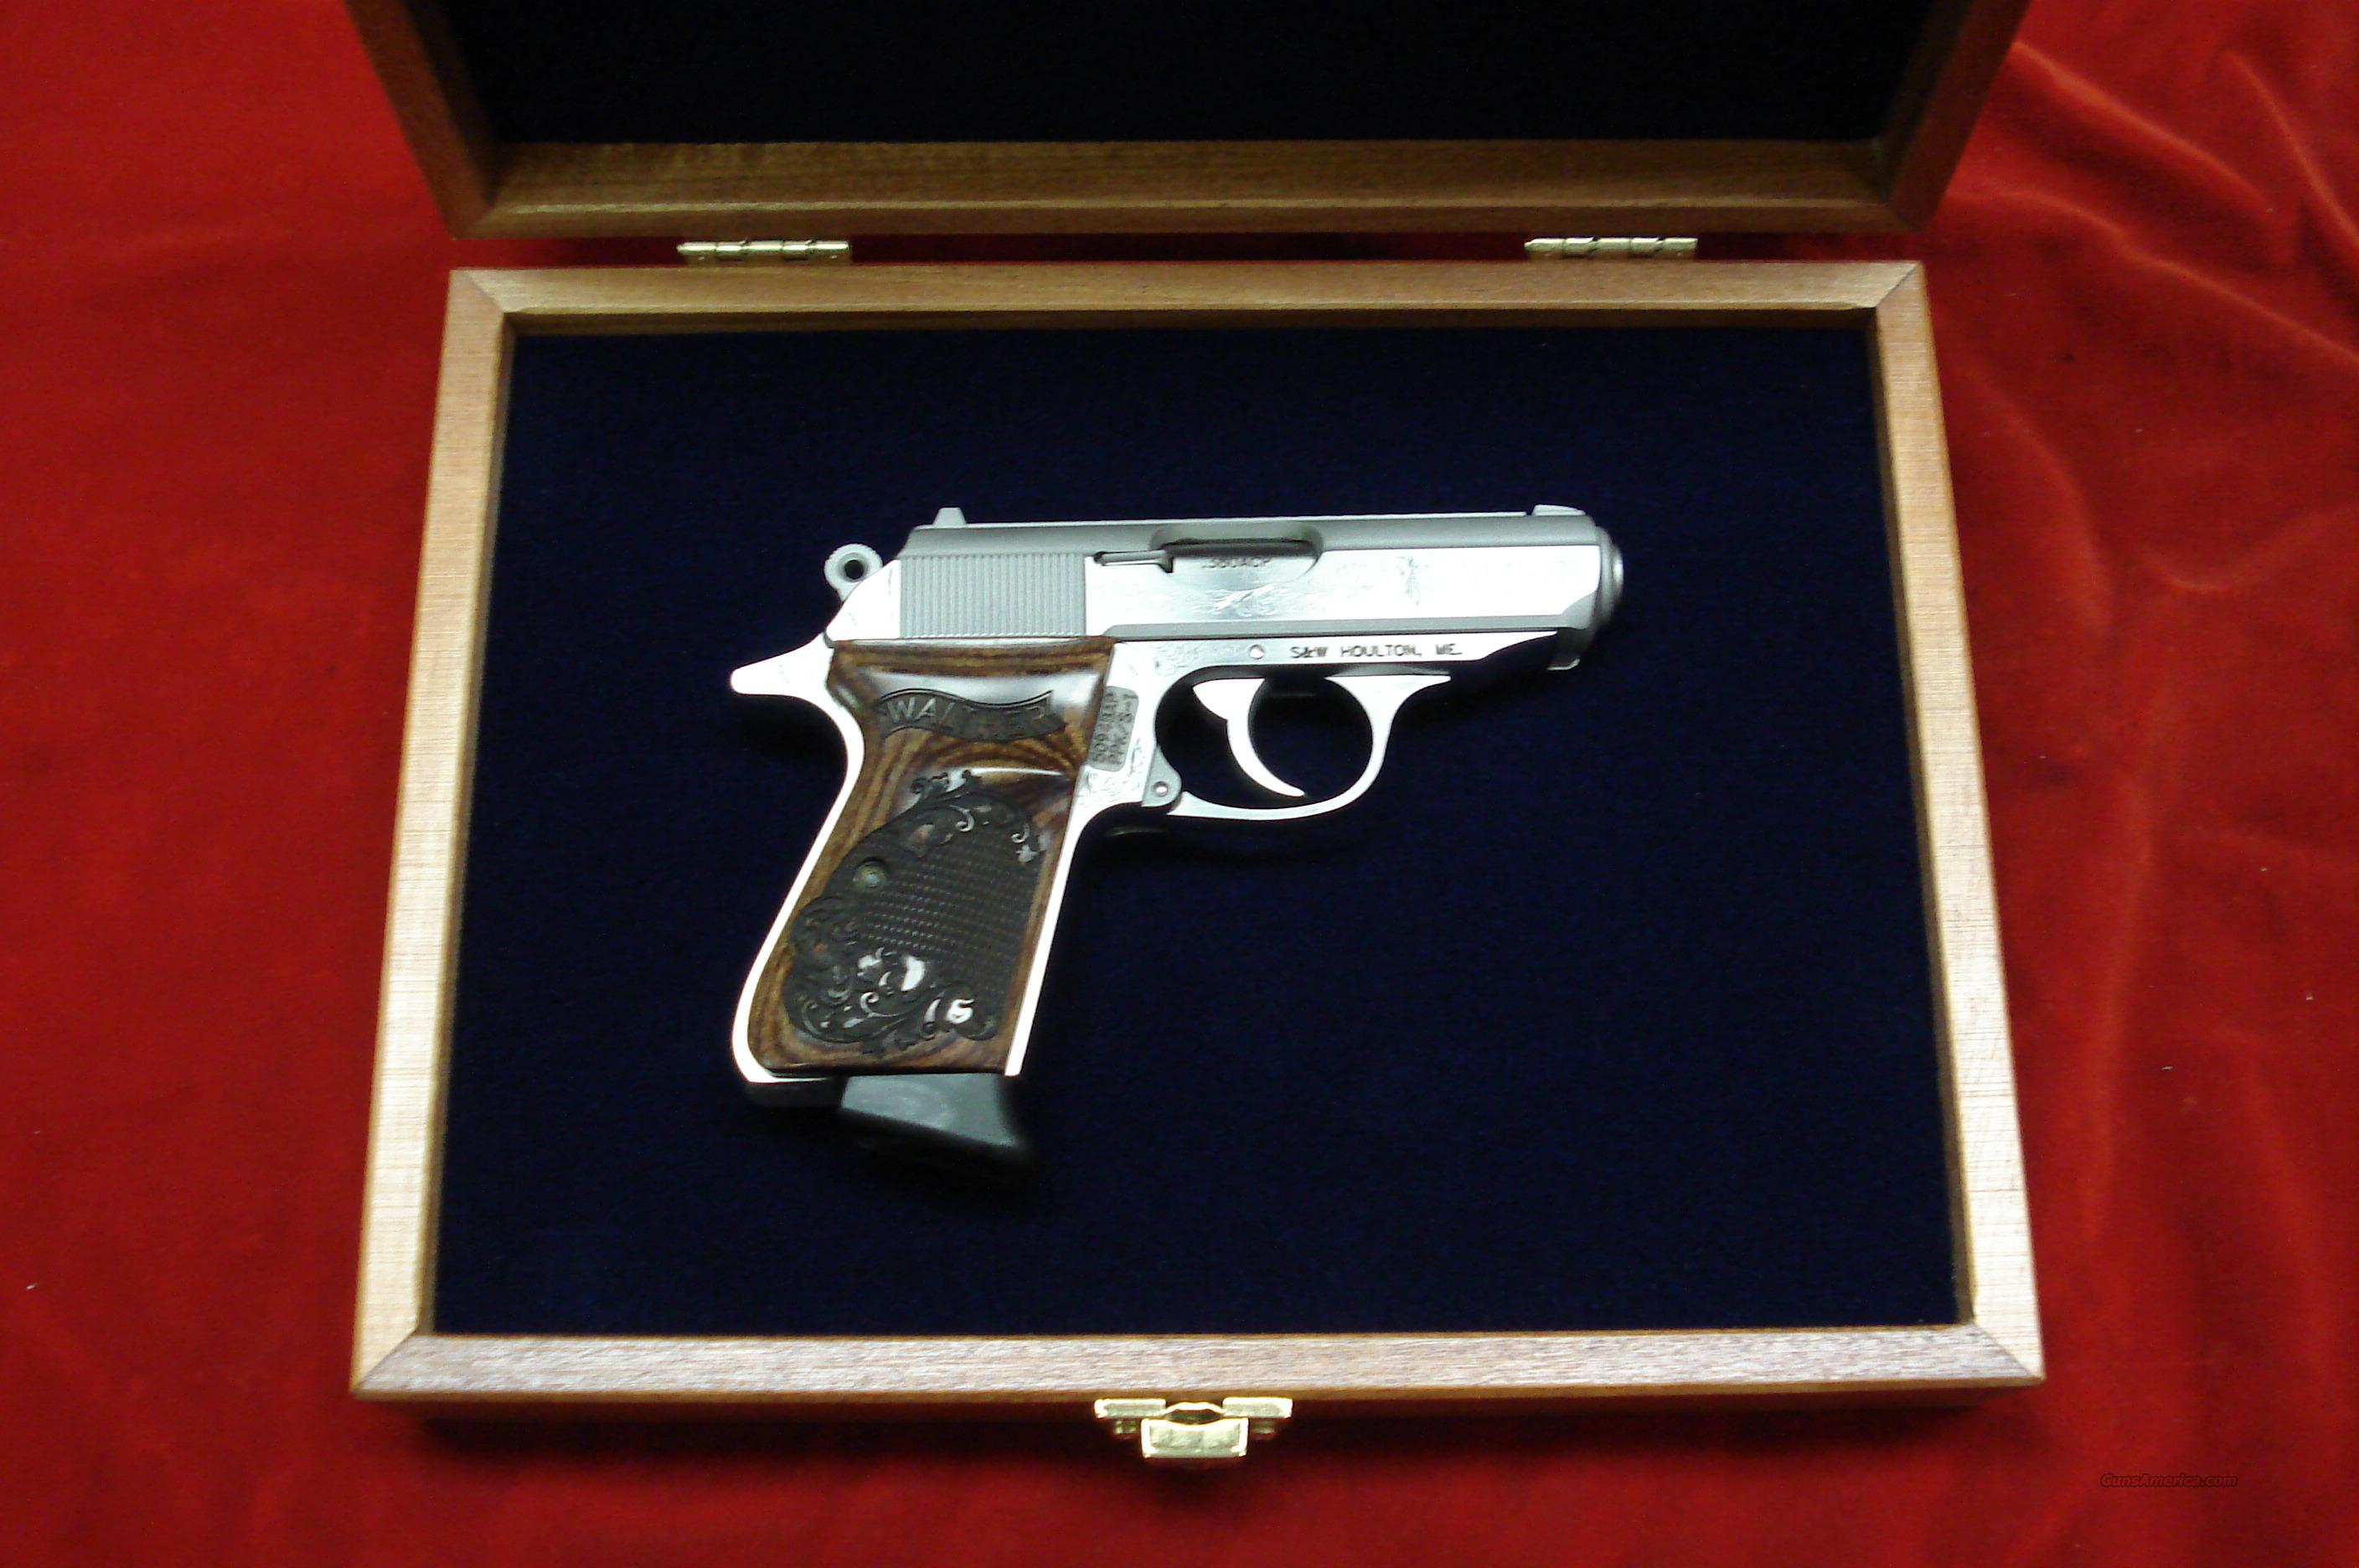 WALTHER PPK/S 380 CAL. ENGRAVED STAINLESS W/PRESENTATION CASE NEW  Guns > Pistols > Walther Pistols > Post WWII > PPK Series